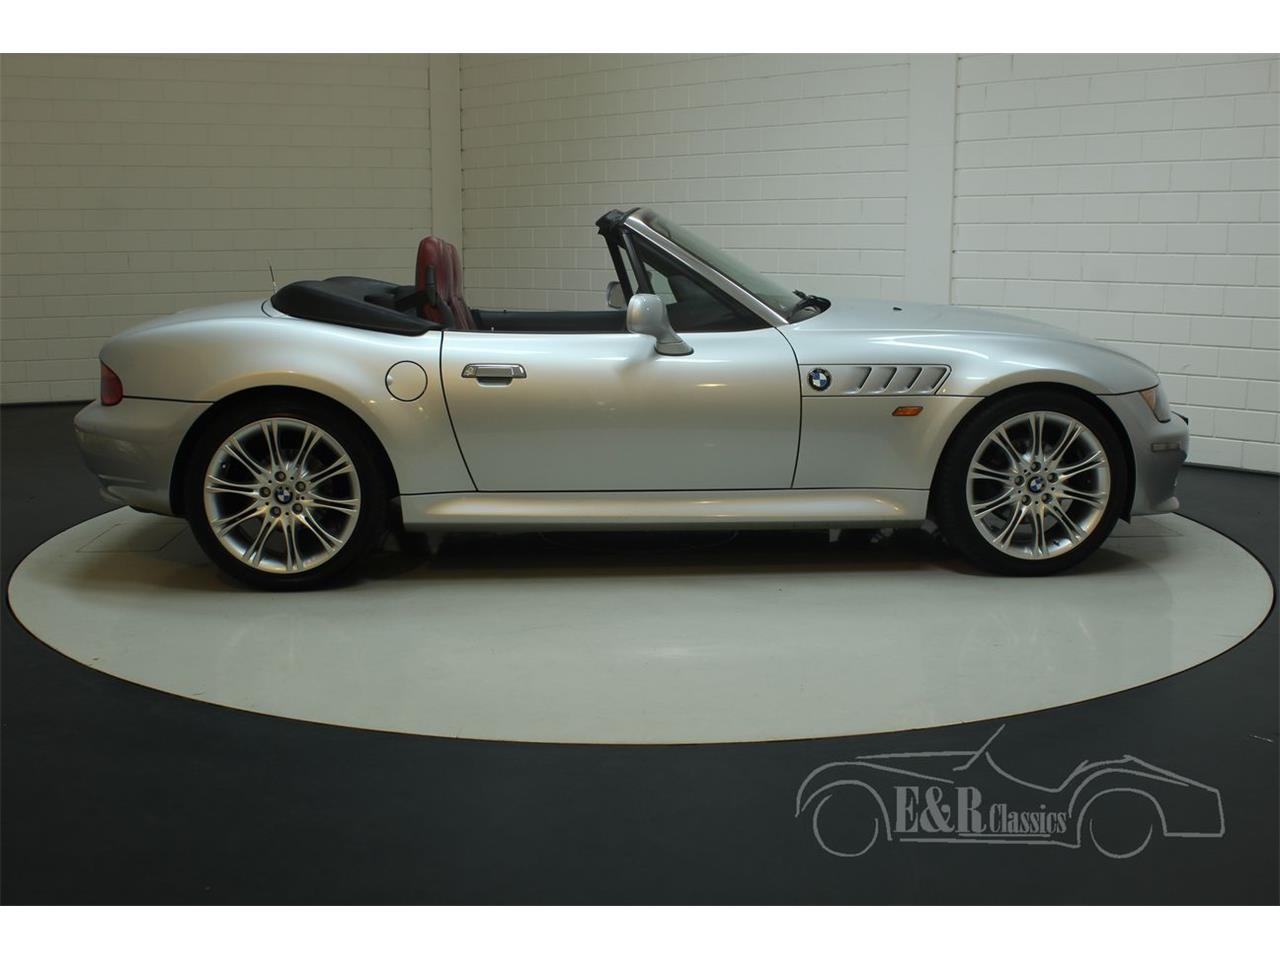 Large Picture of '01 Z3 located in Noord-Brabant - $19,150.00 - PNX1